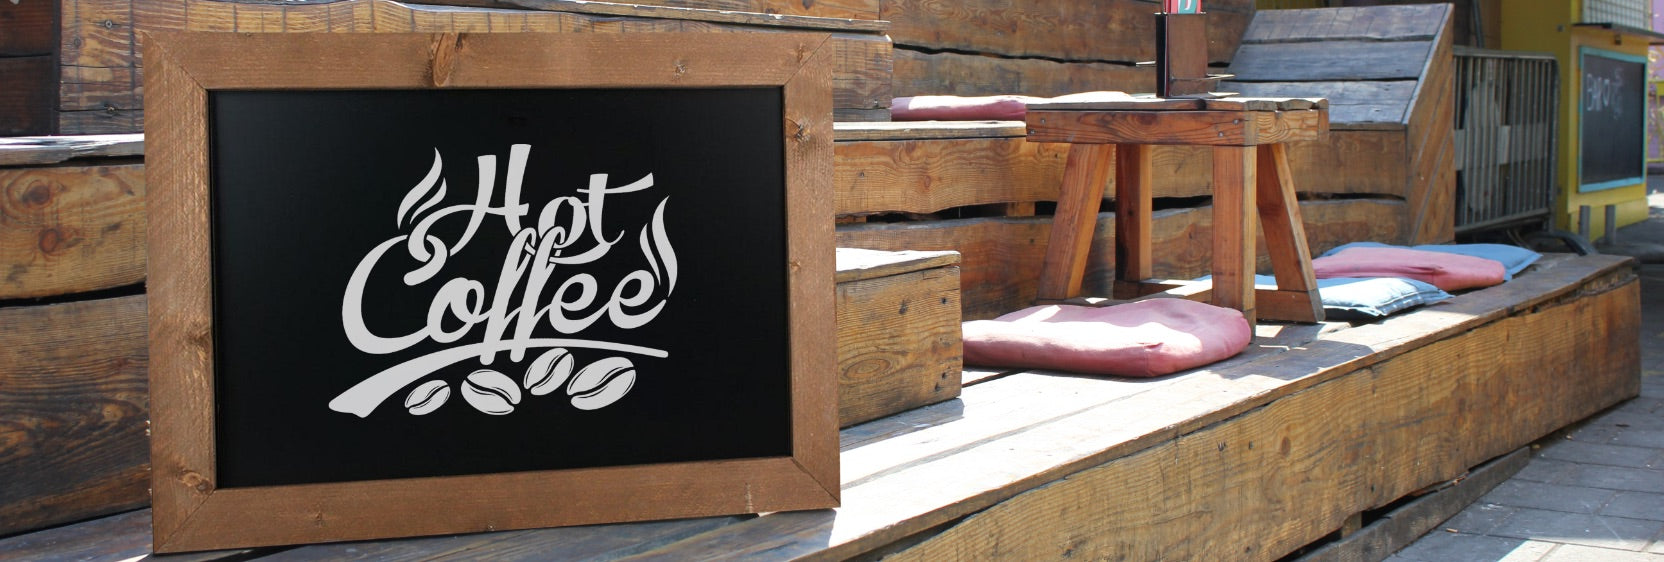 40 x 50cm Chalkboards at display-sign.co.uk